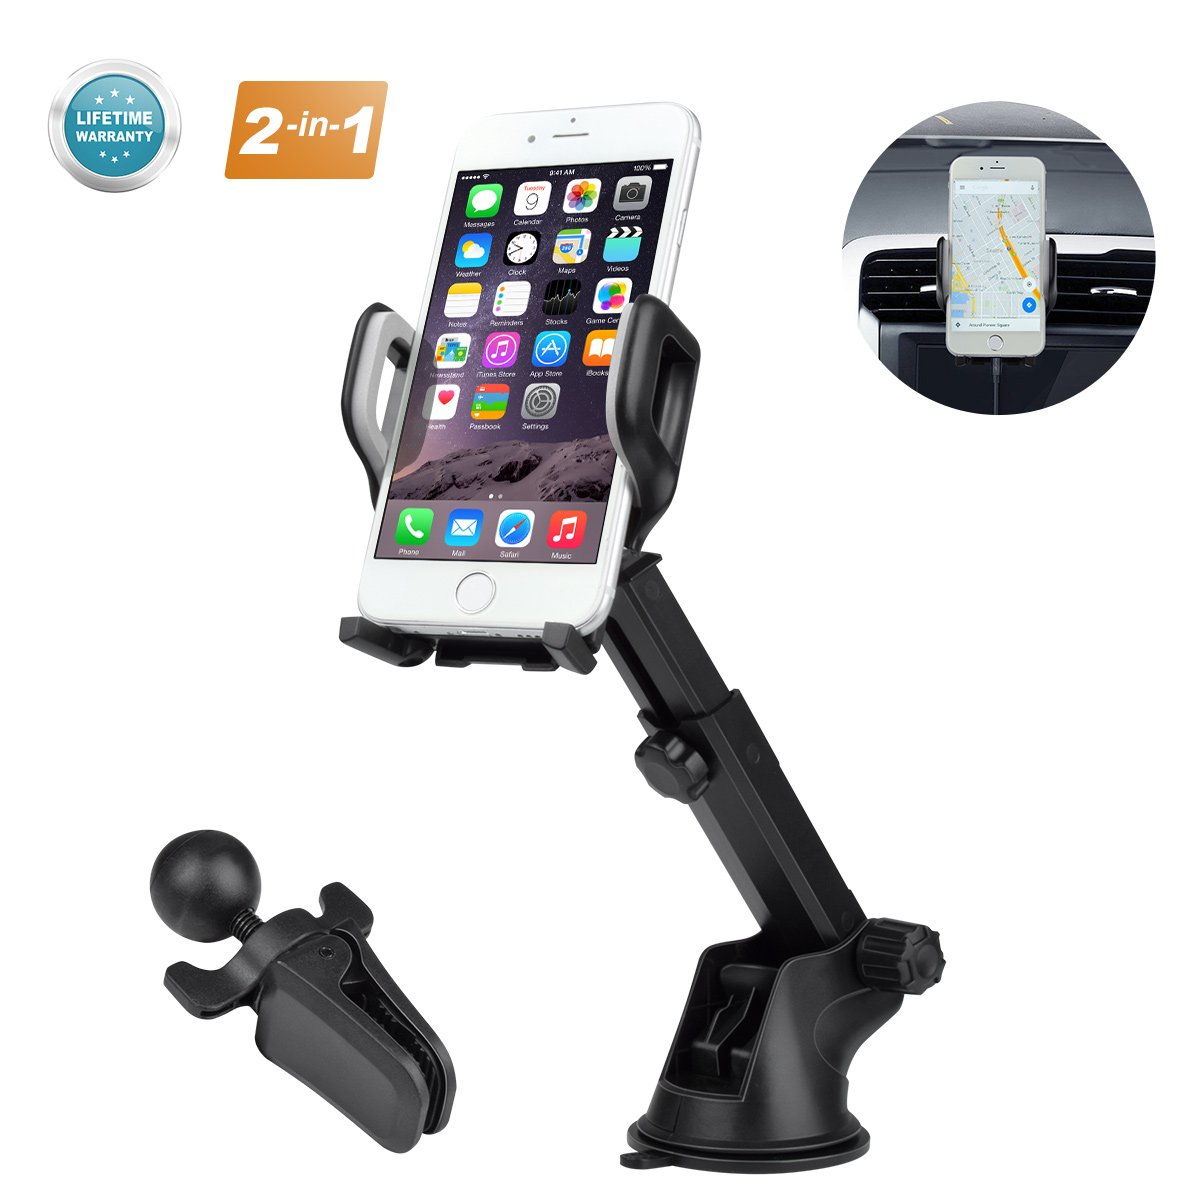 EUKK Car Phone Mount 3-in-1 Windshield